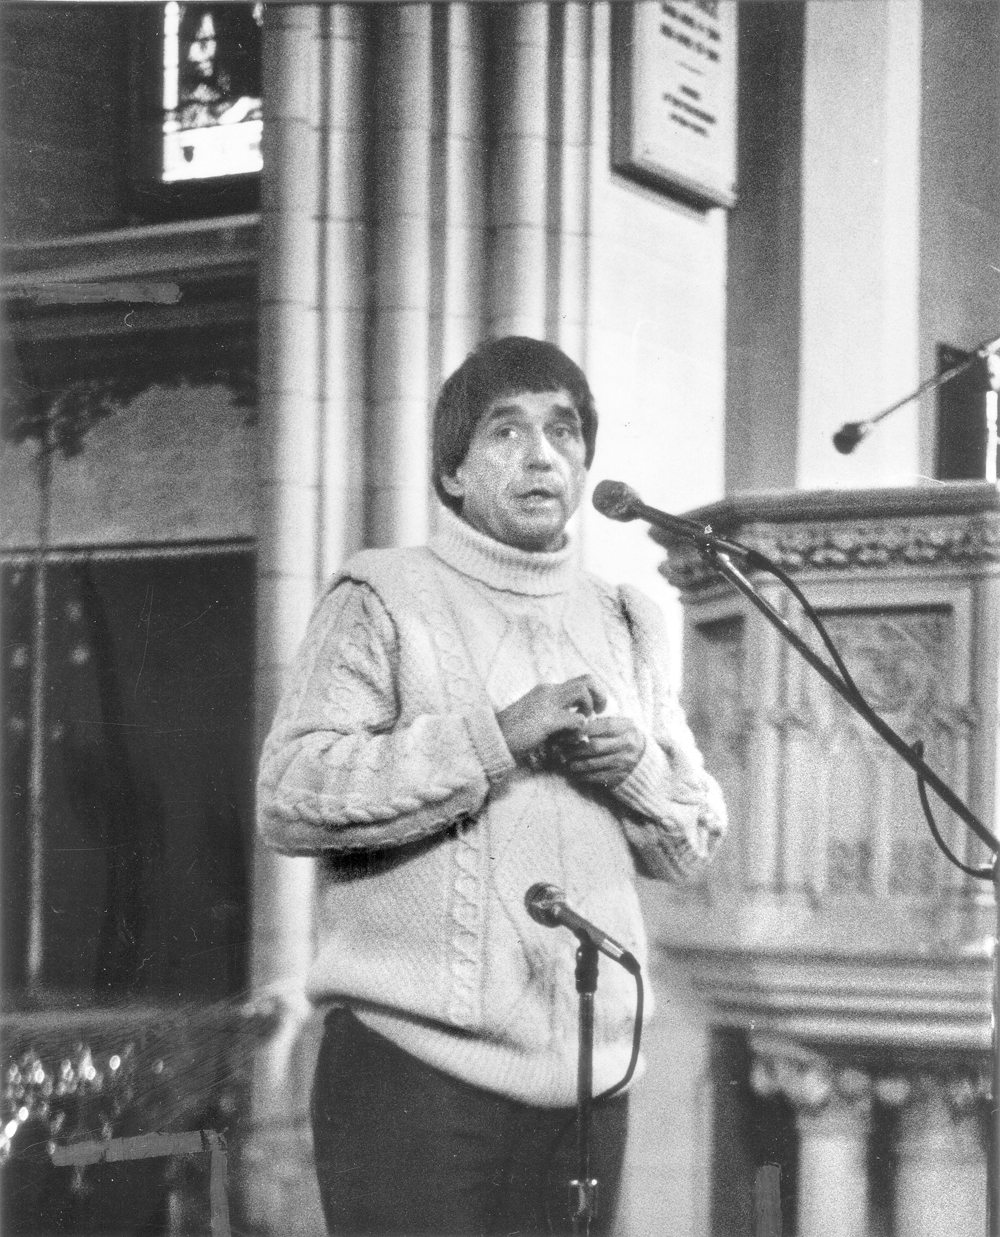 America Is Hard to Find | Rev. Daniel Berrigan speaks before about 1,000 people in Sage Chapel on January 26, 1975 to give the first sermon of that spring semester. It was Berrigan's first public appearance on the Cornell campus since April 1970 when he stunned a throng of 15,000 by appearing at a Barton Hall celebration in his honor, even though he was then a fugitive being actively hunted by the FBI.